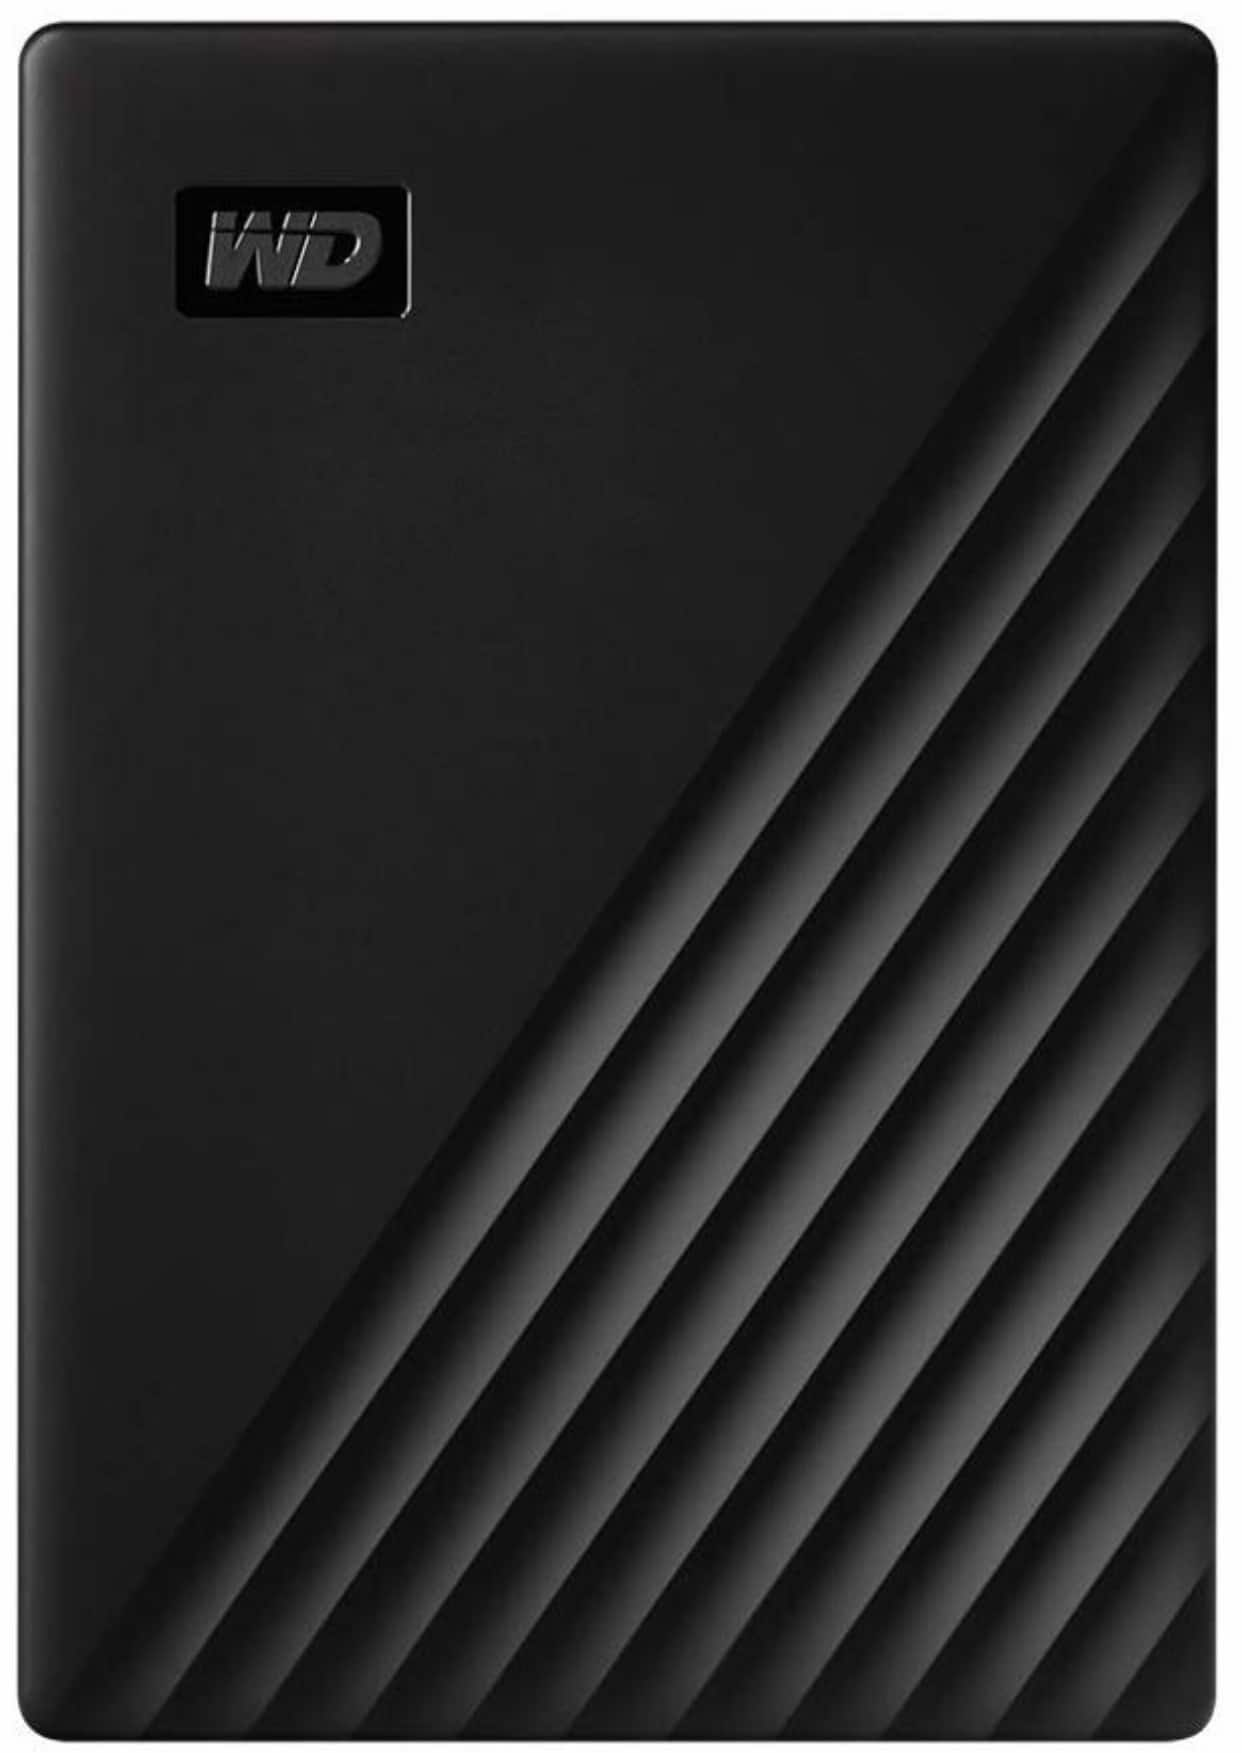 WD 2TB My Passport External Hard Drive $58 on Amazon